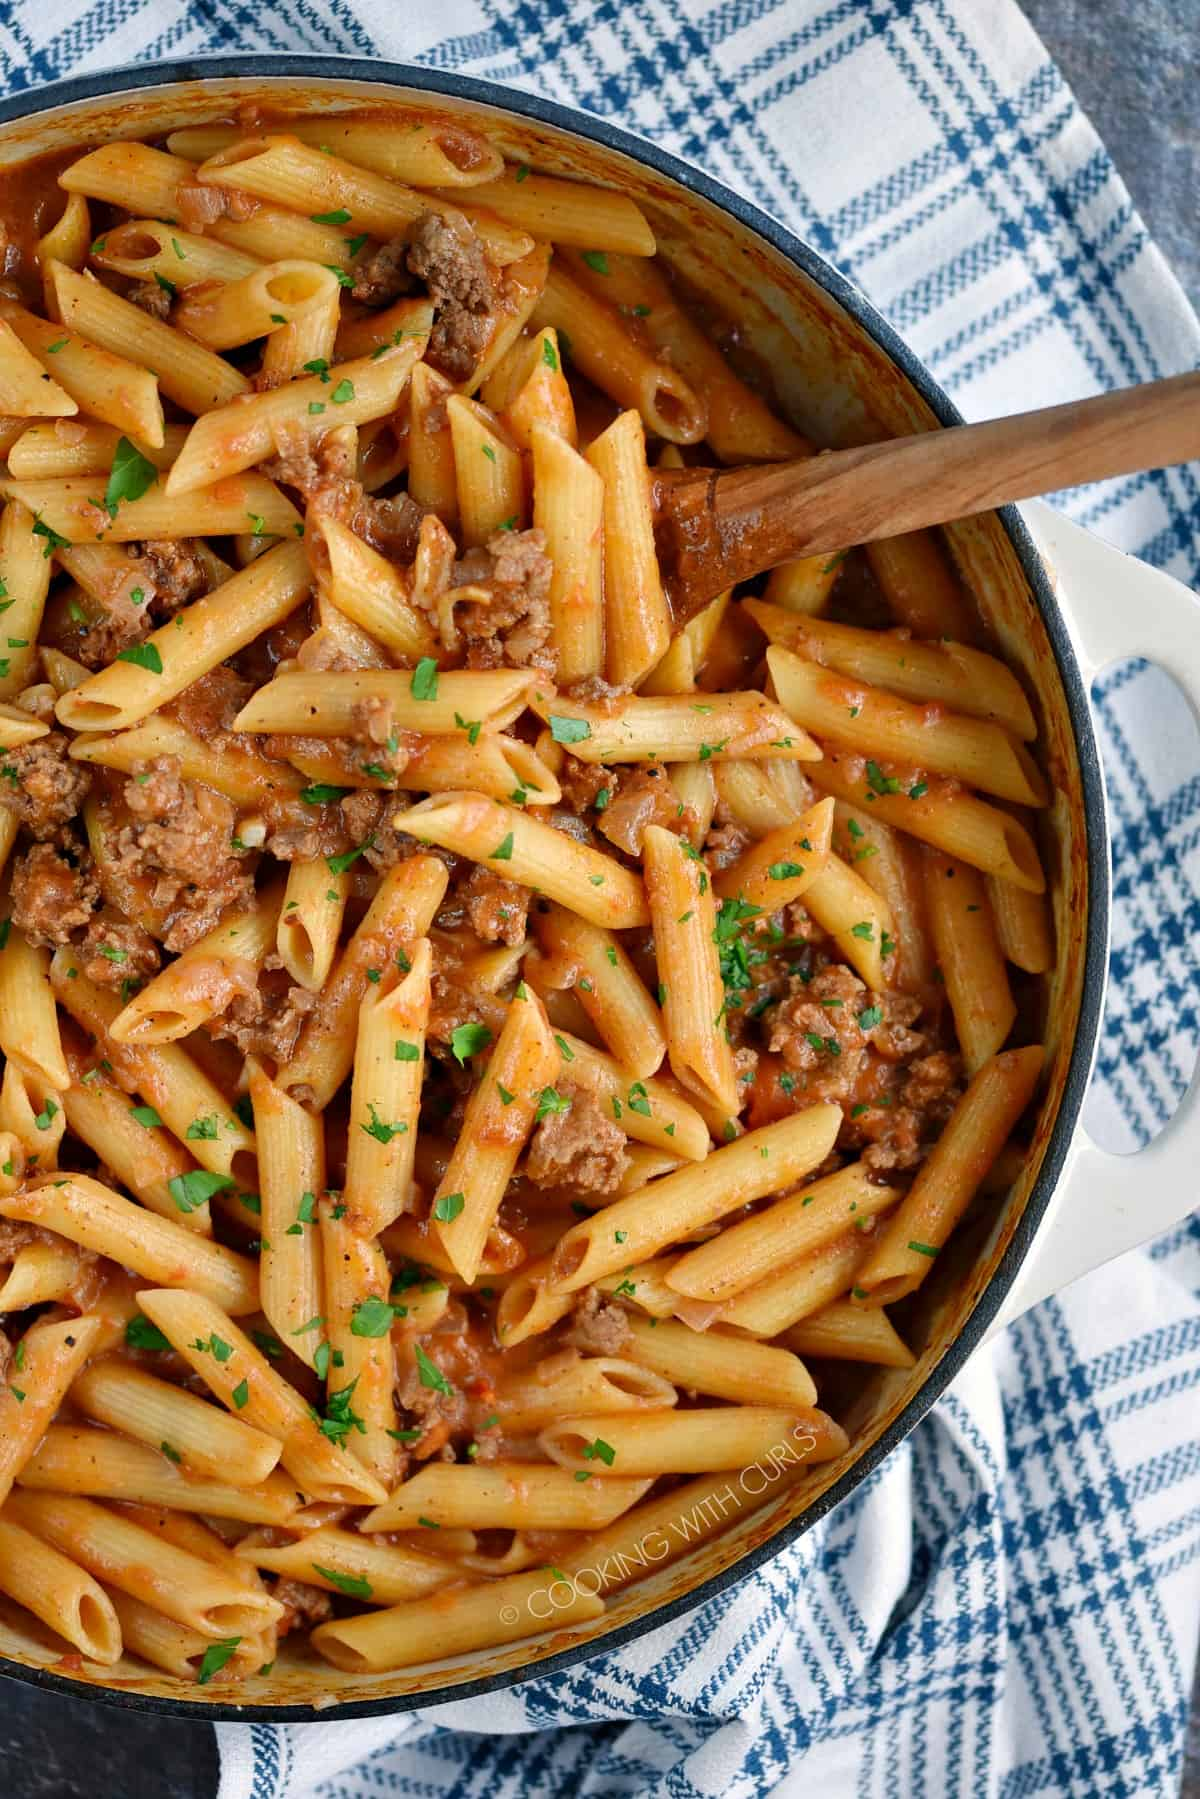 Looking down on a skillet filled with Sloppy Joe Pasta.